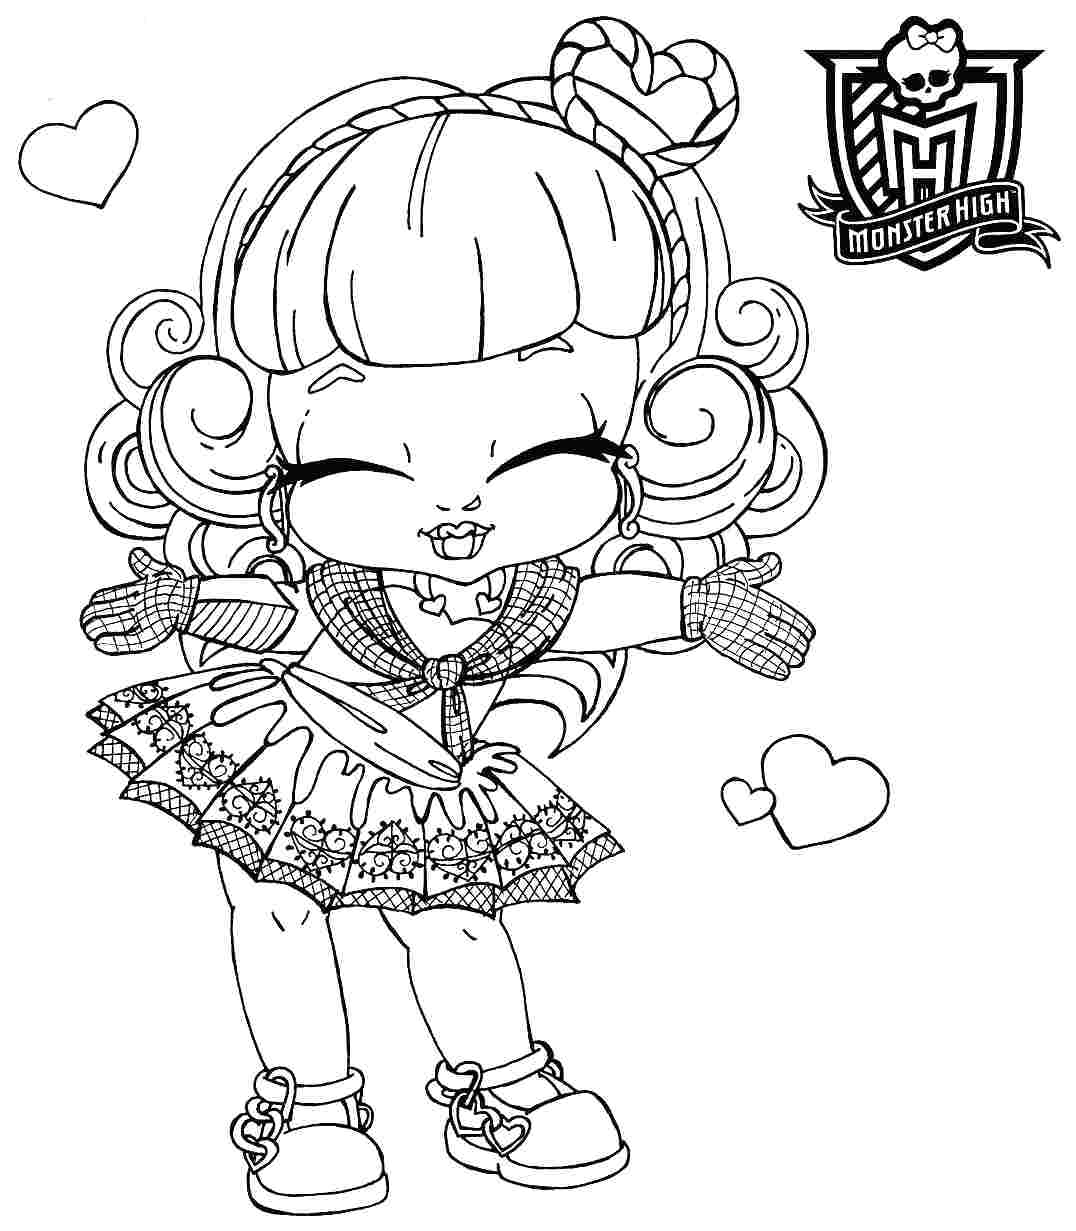 Monster High Baby Coloring Pages 012 to Coloring Pages Collection Of Wydowna Spider by Elfkena On Deviantart to Print